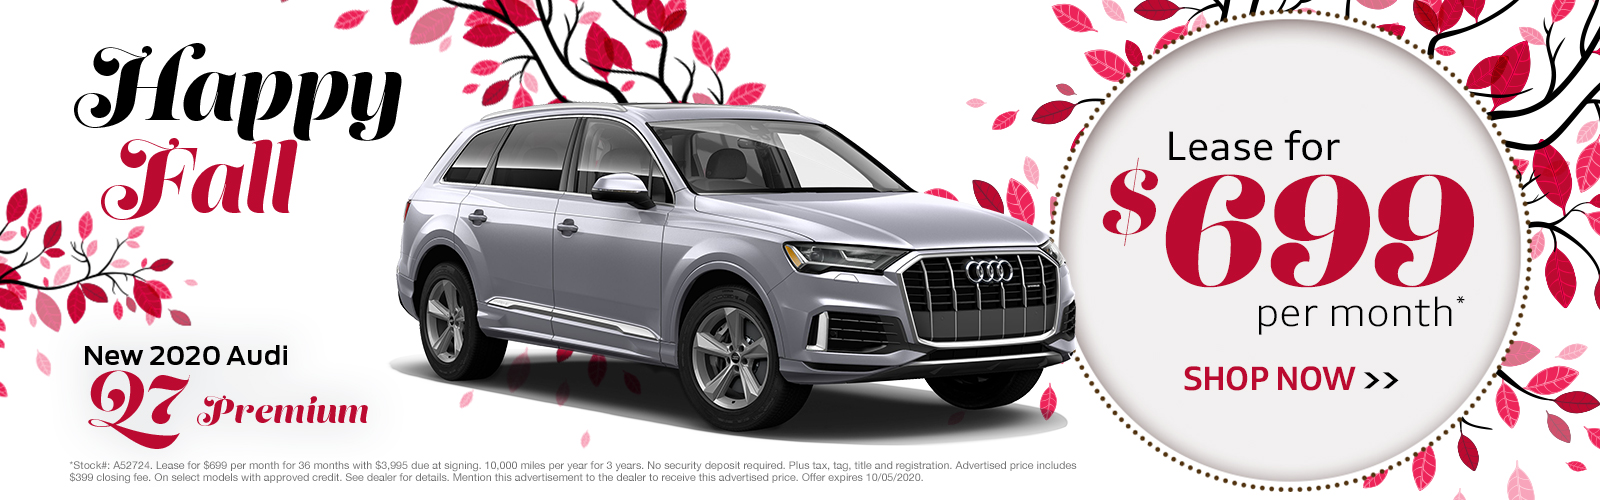 New 2020 Audi Q7 Greenville SC